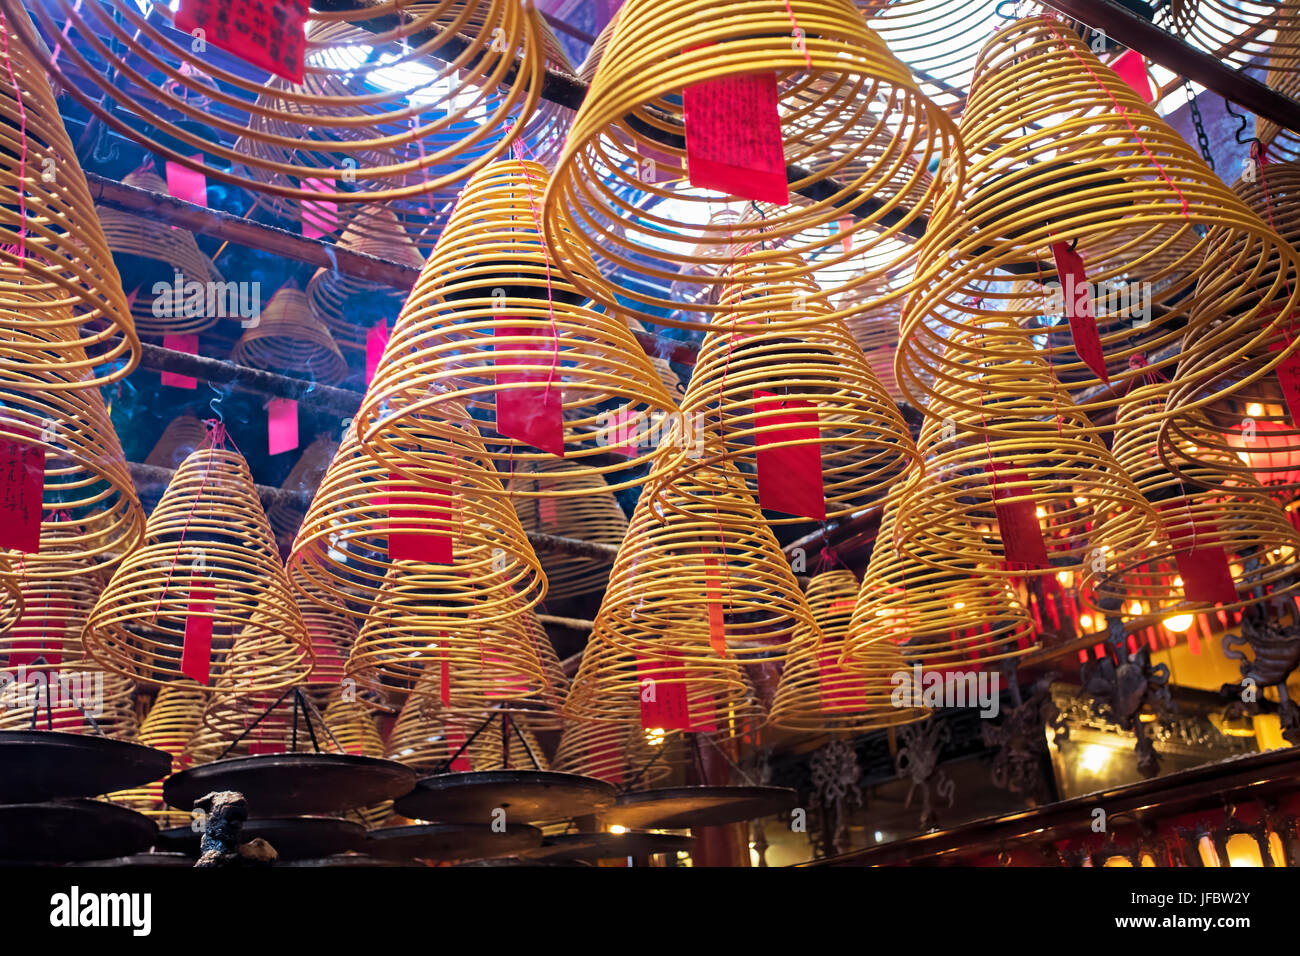 Incense burning in the Man Mo Temple, the most famous Taoist temple in Hong Kong China - Stock Image